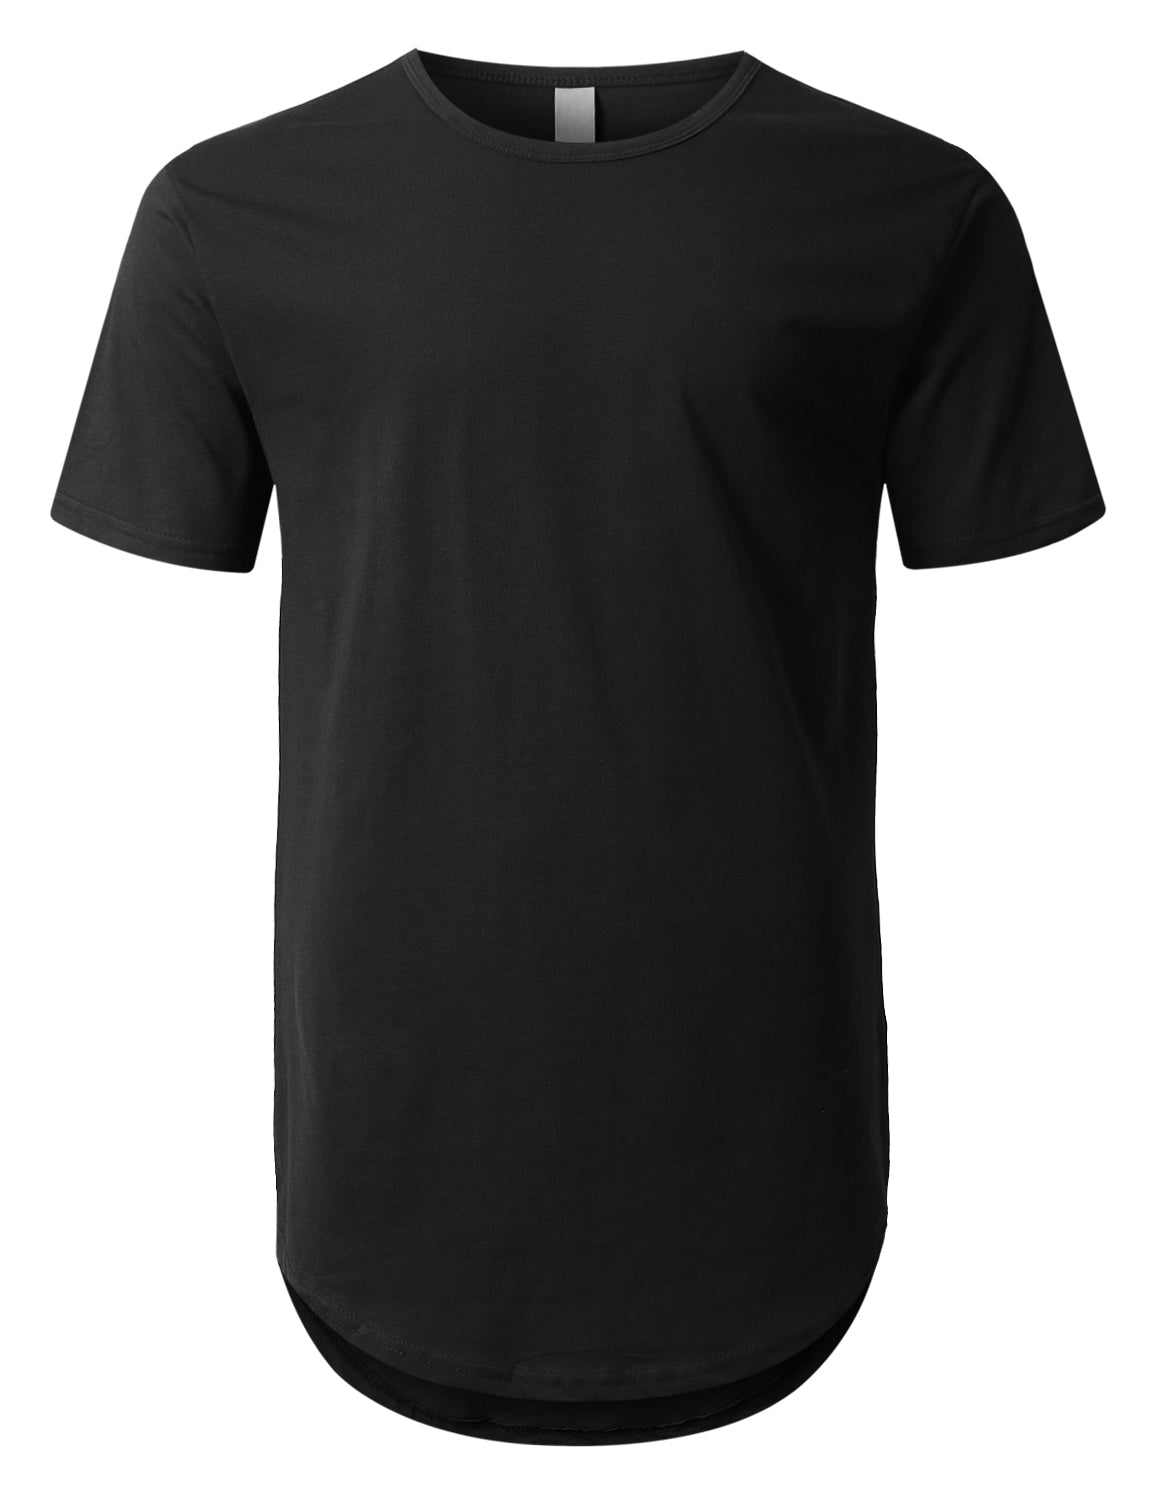 BLACK Crewneck Basic T-Shirts 4 Pack Black/Black